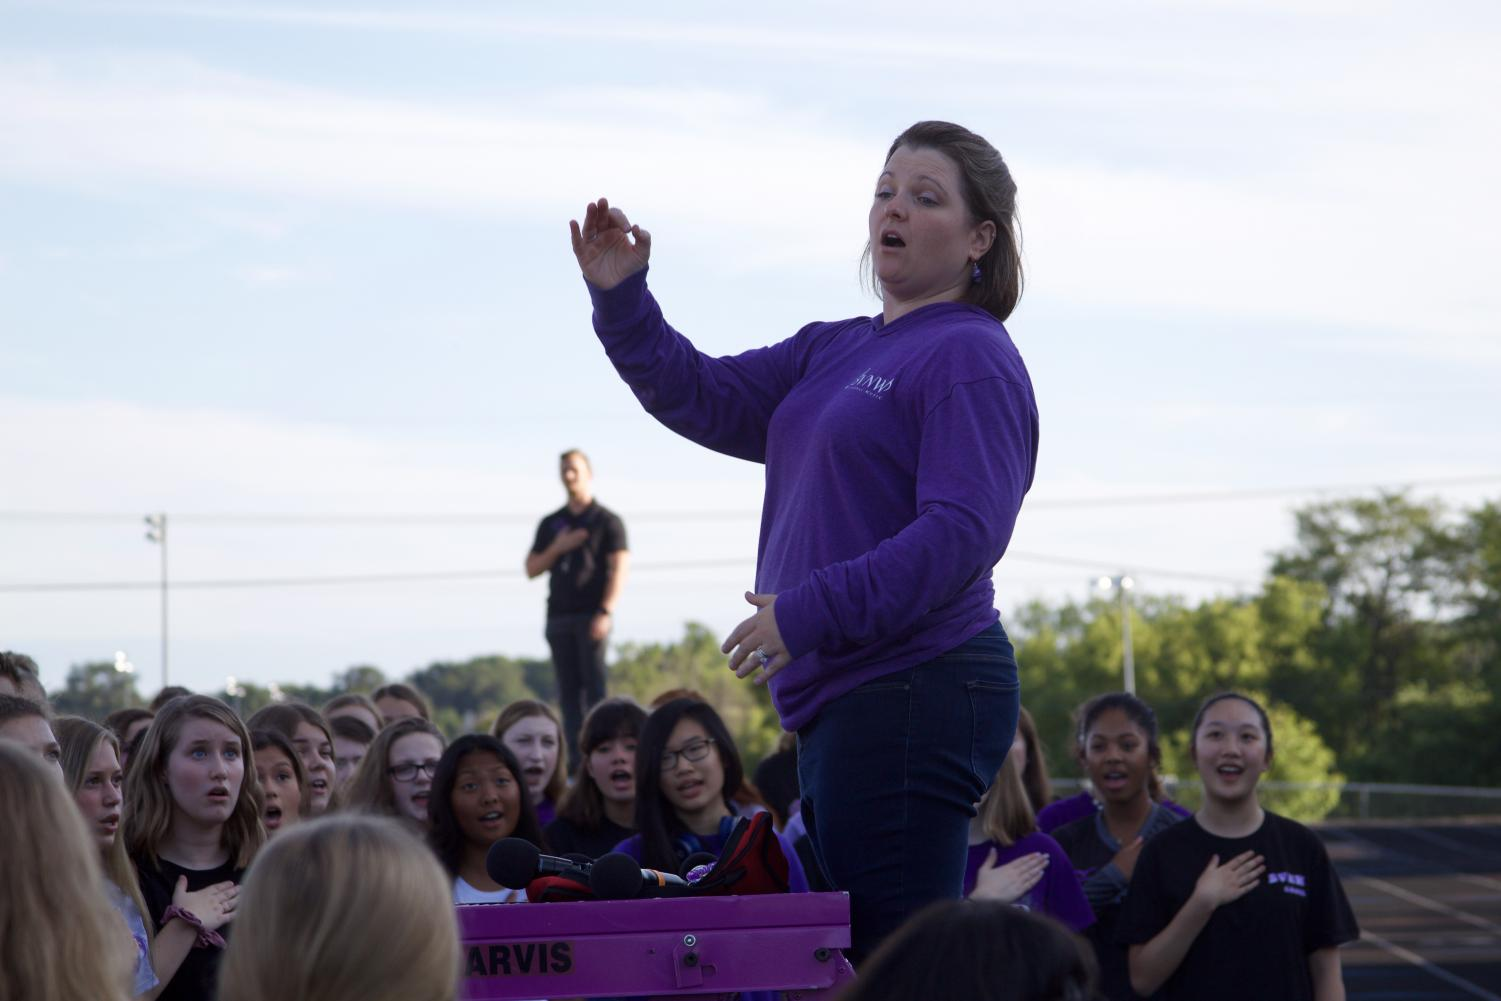 Choir+director+Beth+Richey-Sullivan+conducts+the+choir+students+during+the+National+Anthem+before+the+Husky+Night+parade.+